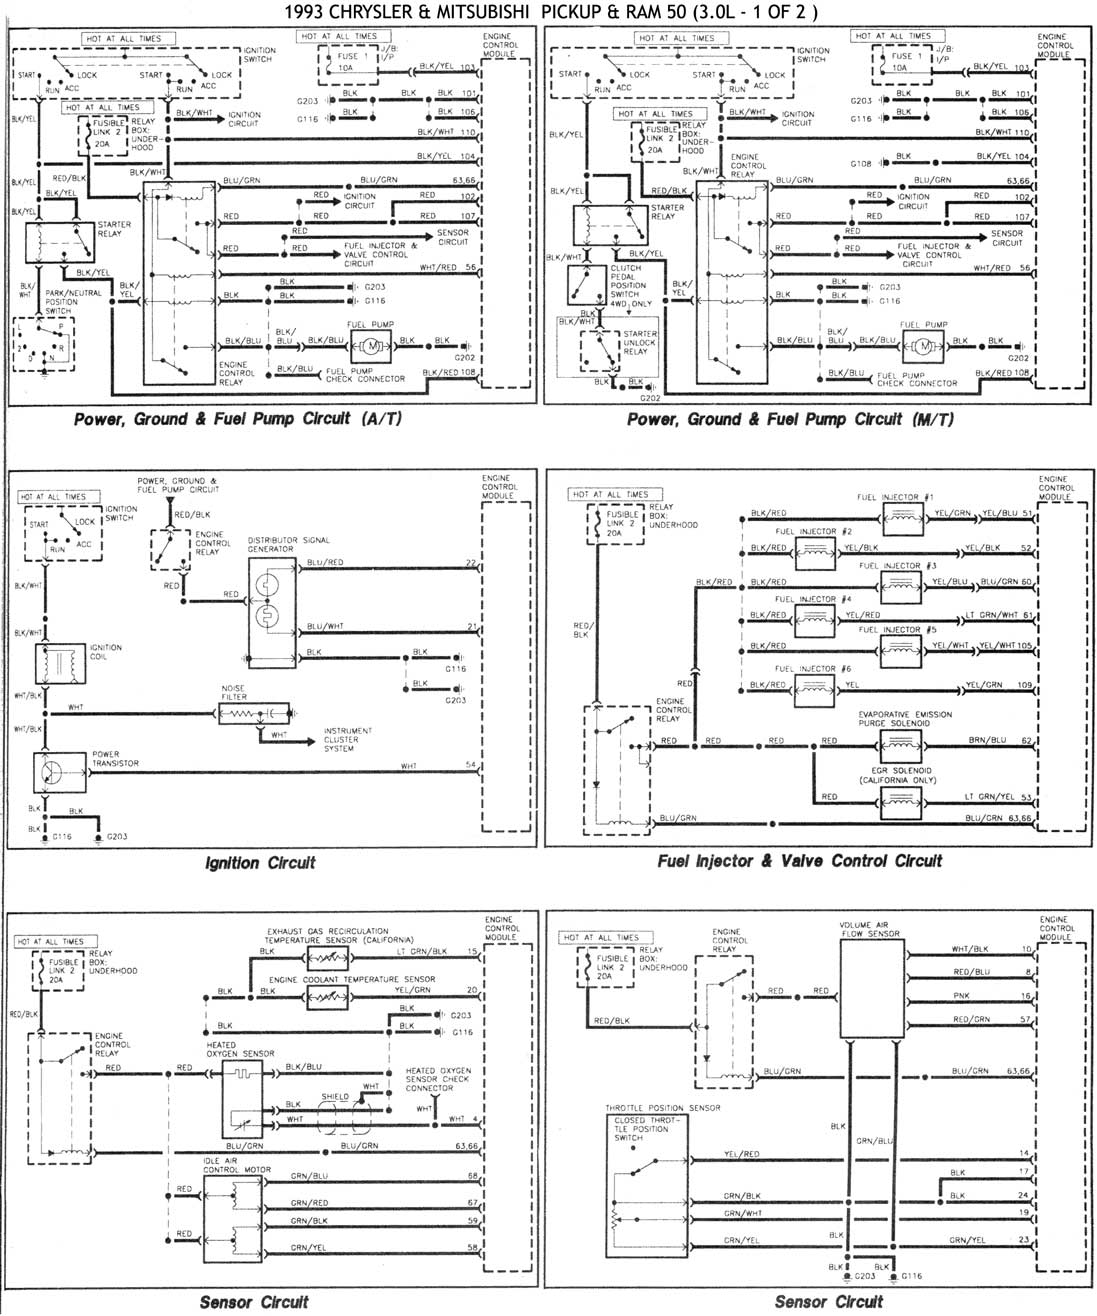 2001 Mitsubishi Montero Sport Fuse Box Diagram Wiring For 2000 Eclipse Car